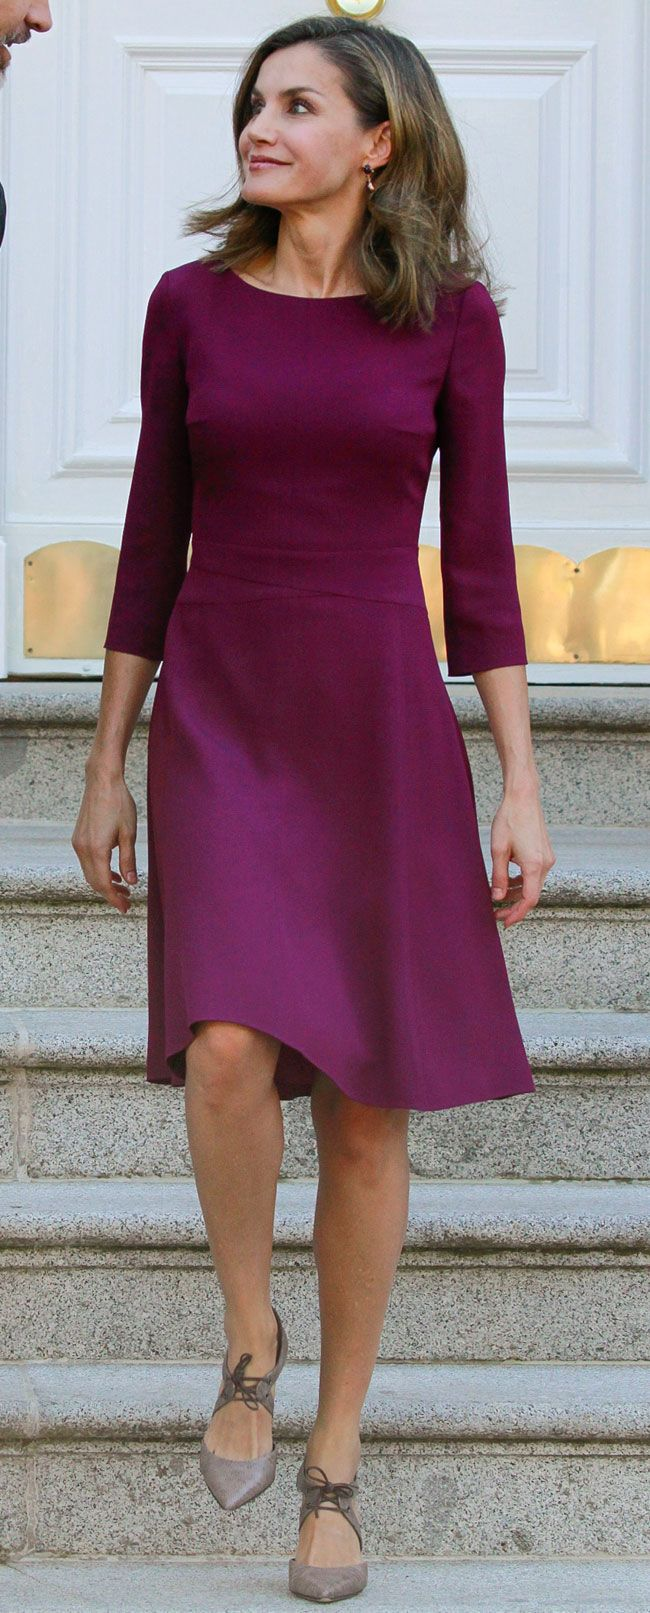 Love the color and simplicity of the dress. Shoes are nice too